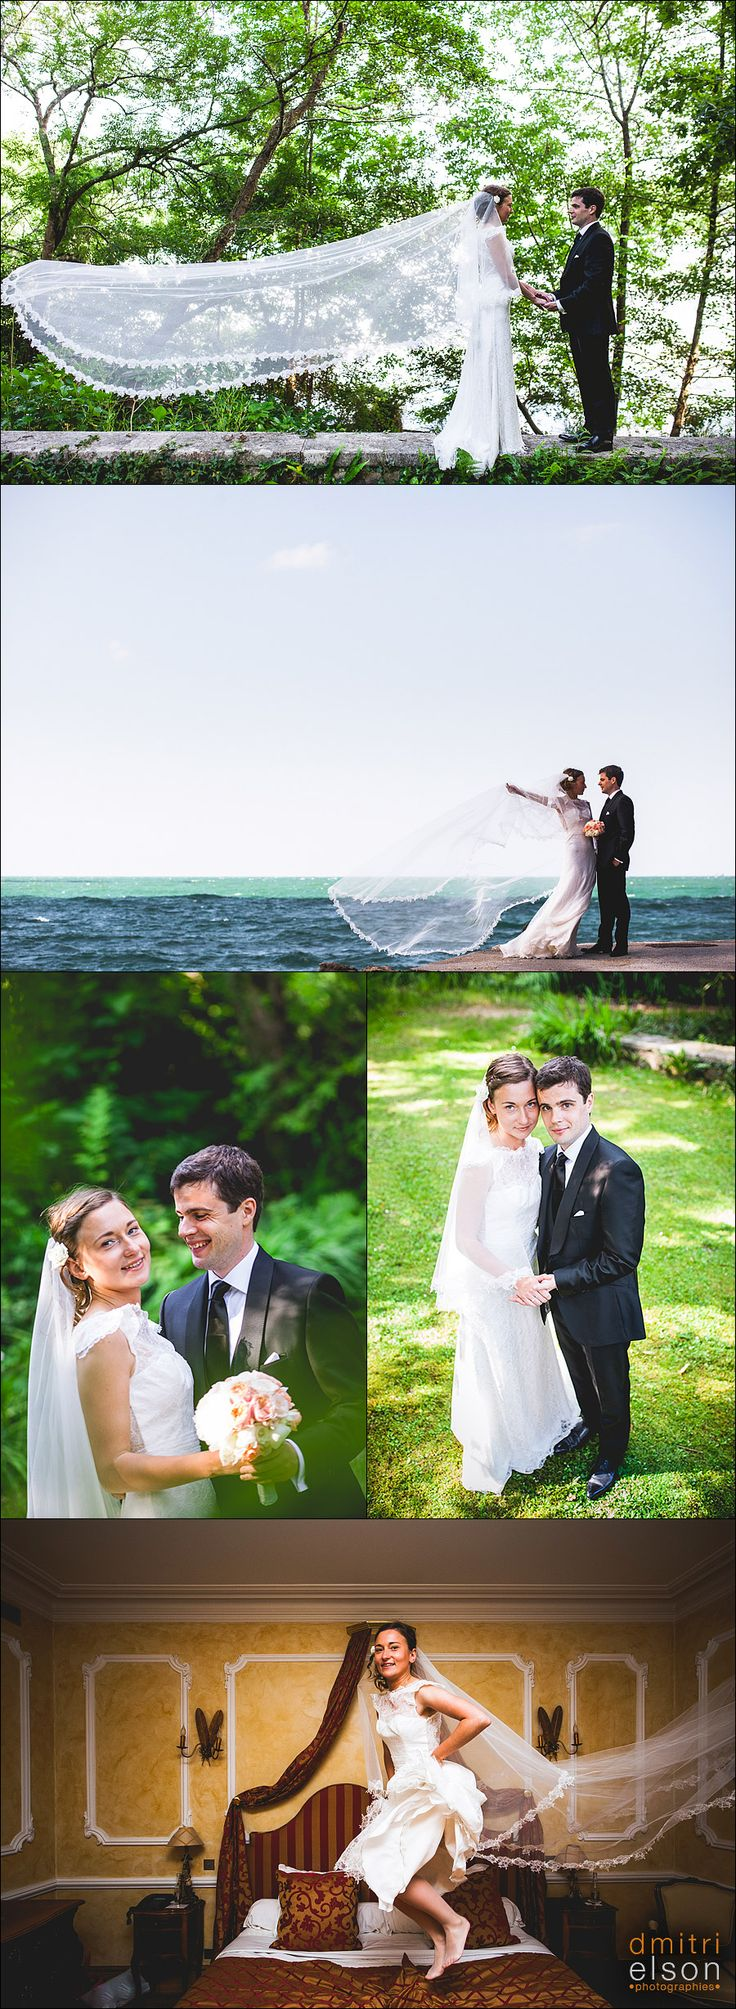 French & Russian wedding in Biarritz, France ! by Dmitri Elson Photography http://www.photographe-mariage-aquitaine.fr/